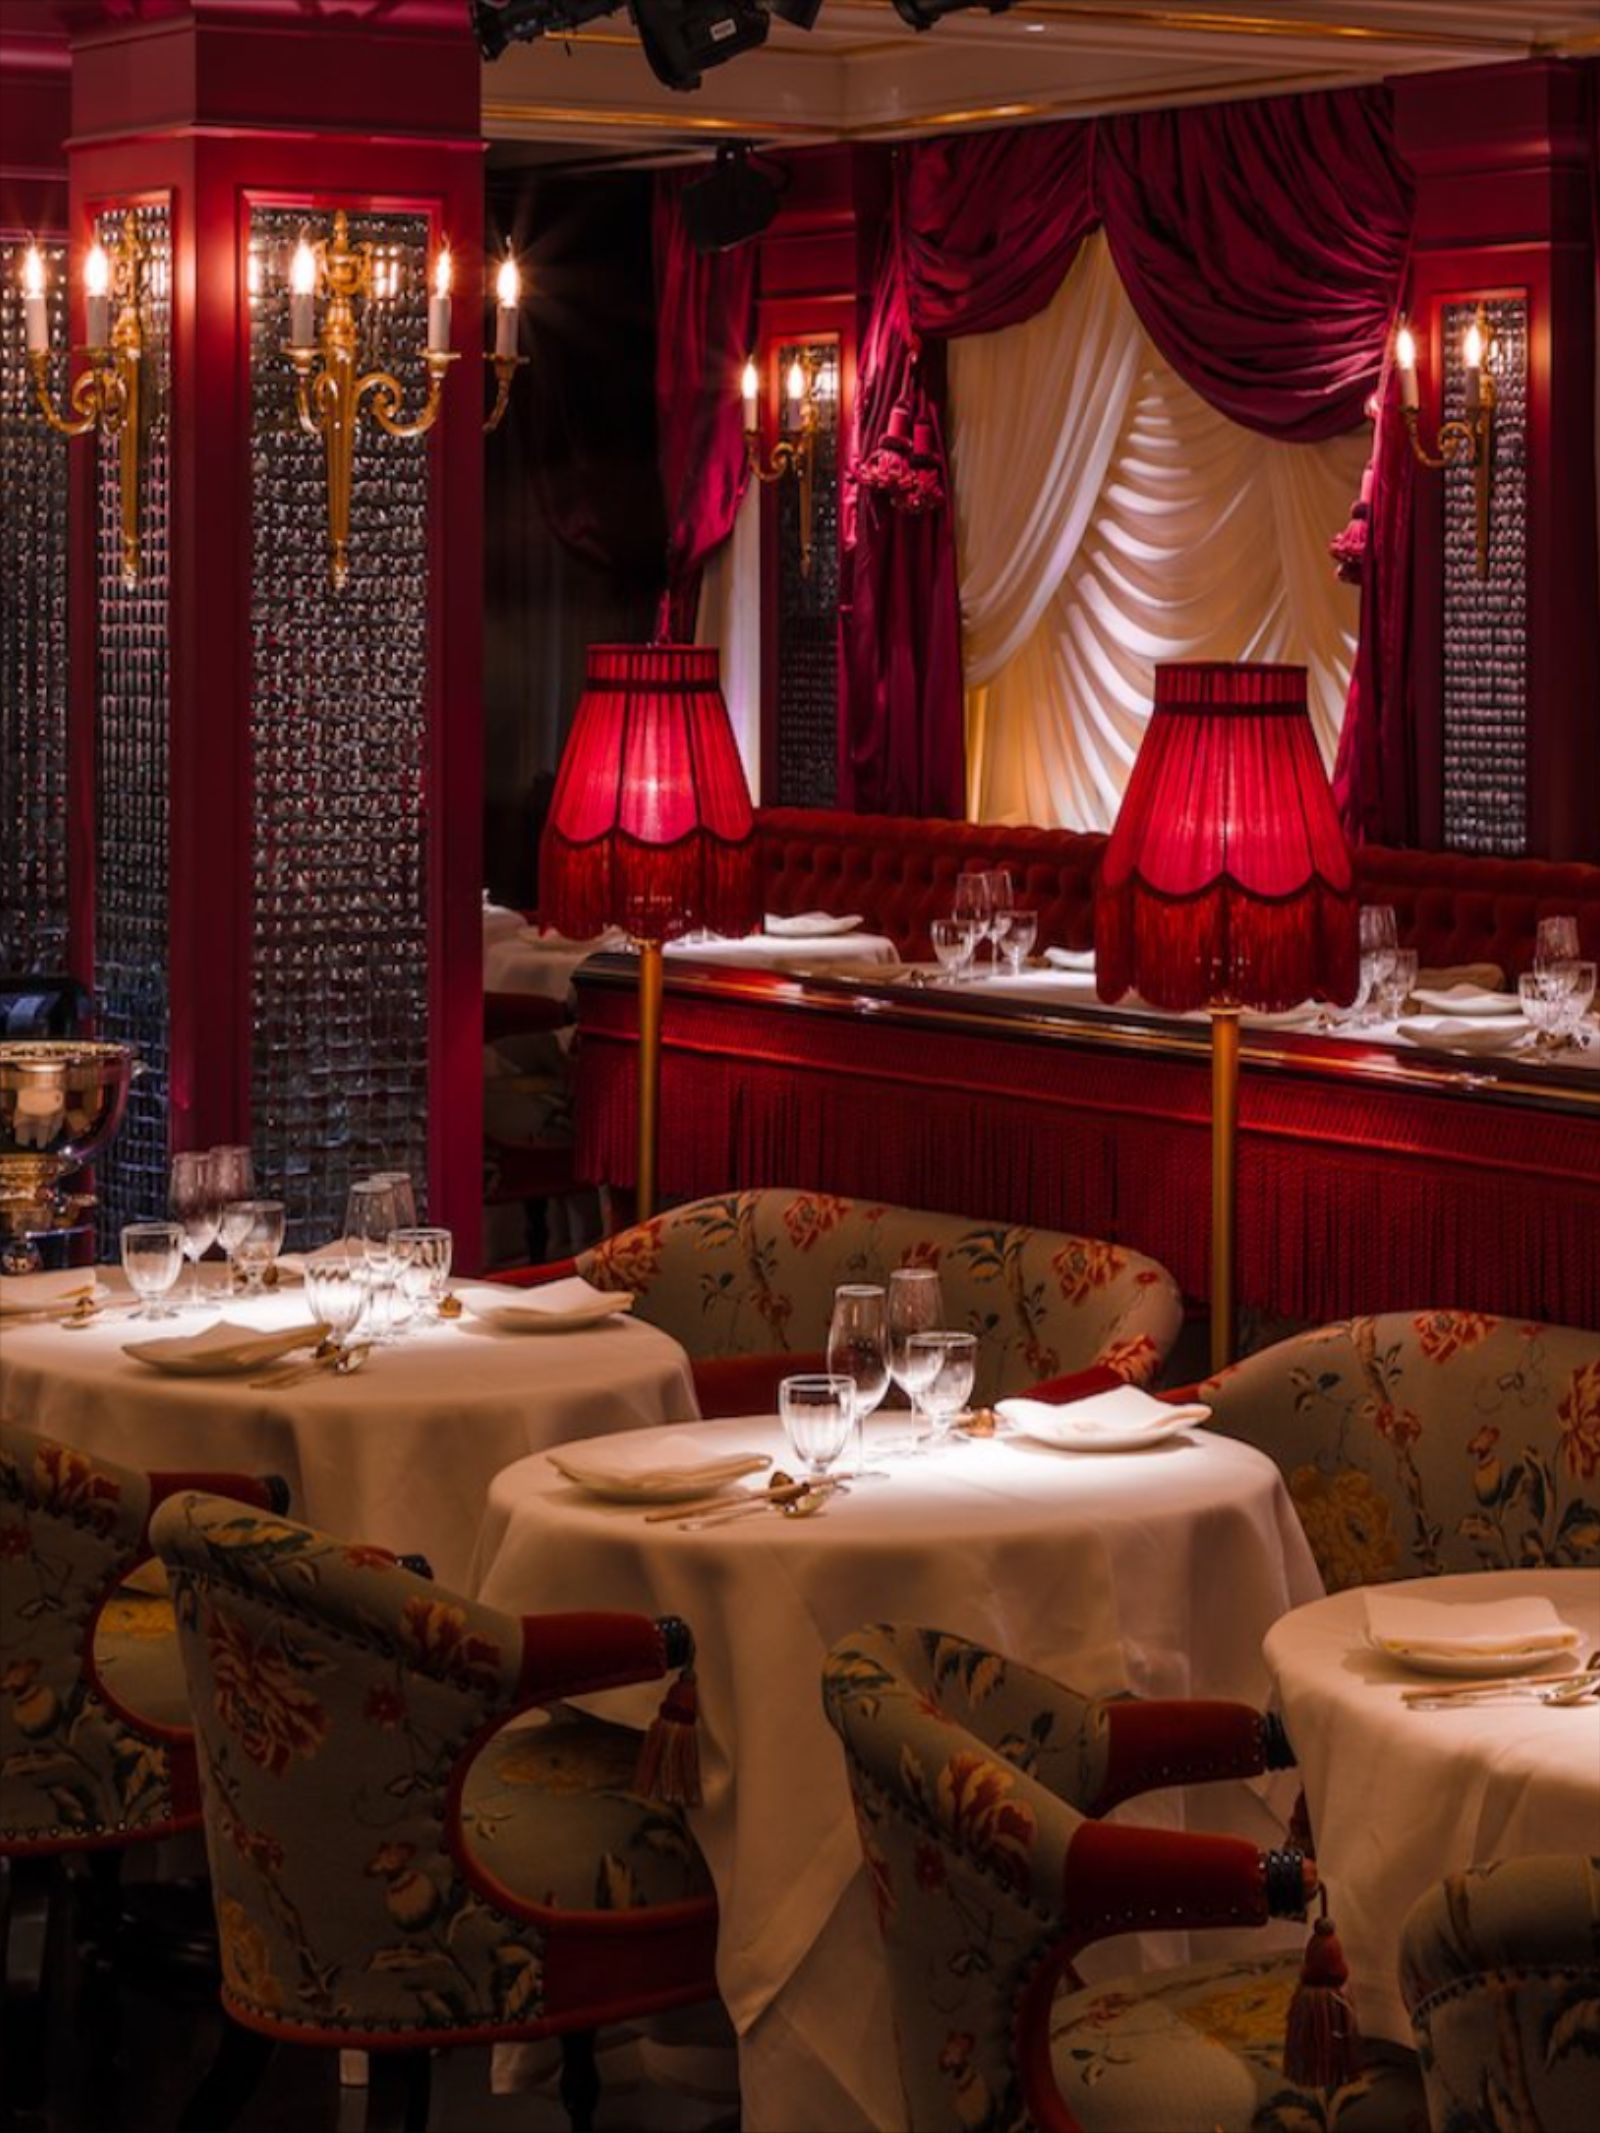 13 Of The Best Chinese Restaurants In London Suitcase Magazine In 2020 Chinese Restaurant Best Chinese Restaurant London Restaurants